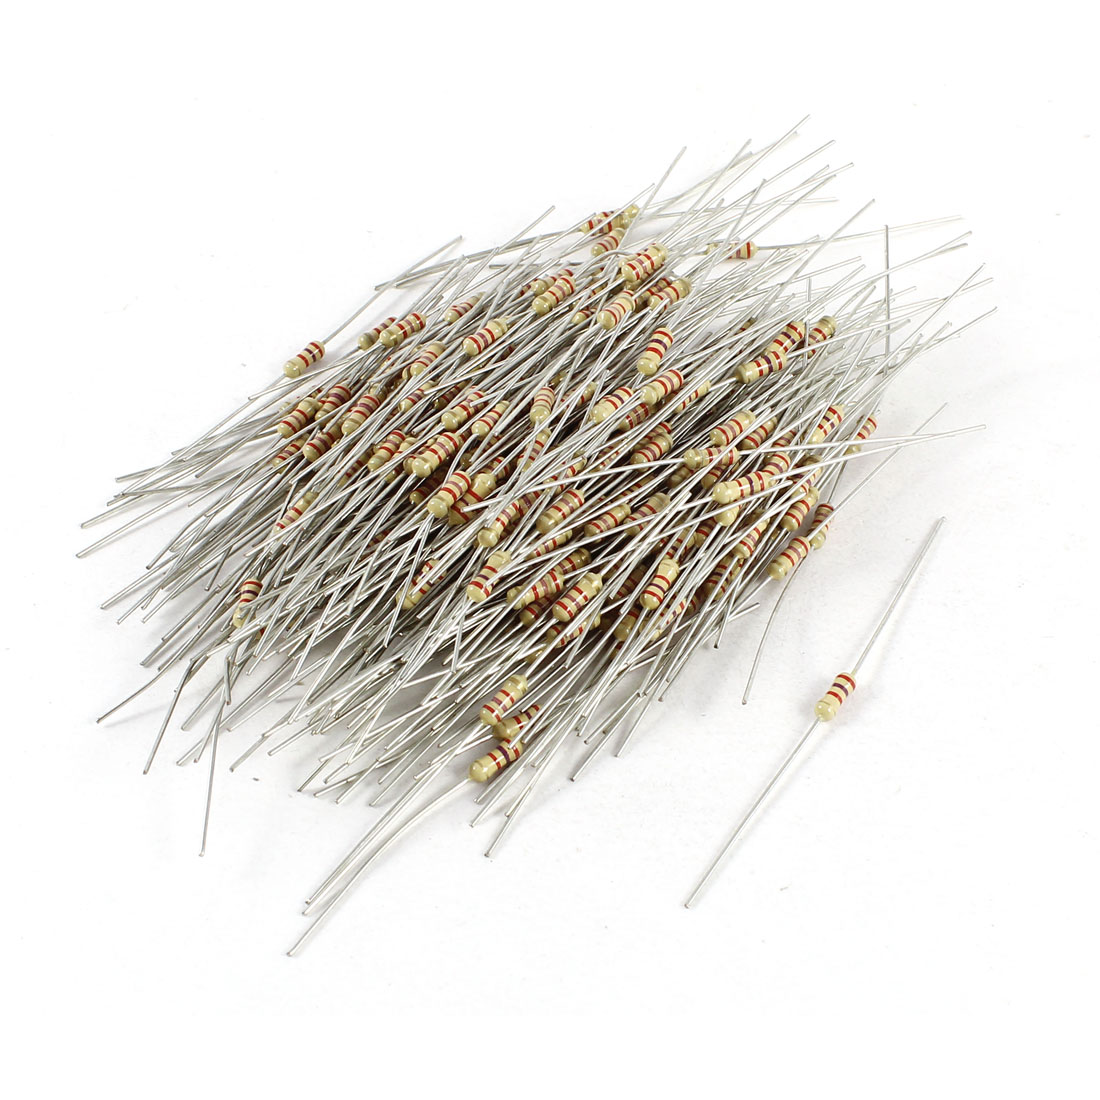 300 Pcs Axial Lead 2.7K Ohm 1/4W 5% Tolerence Carbon Film Resistor Resistance